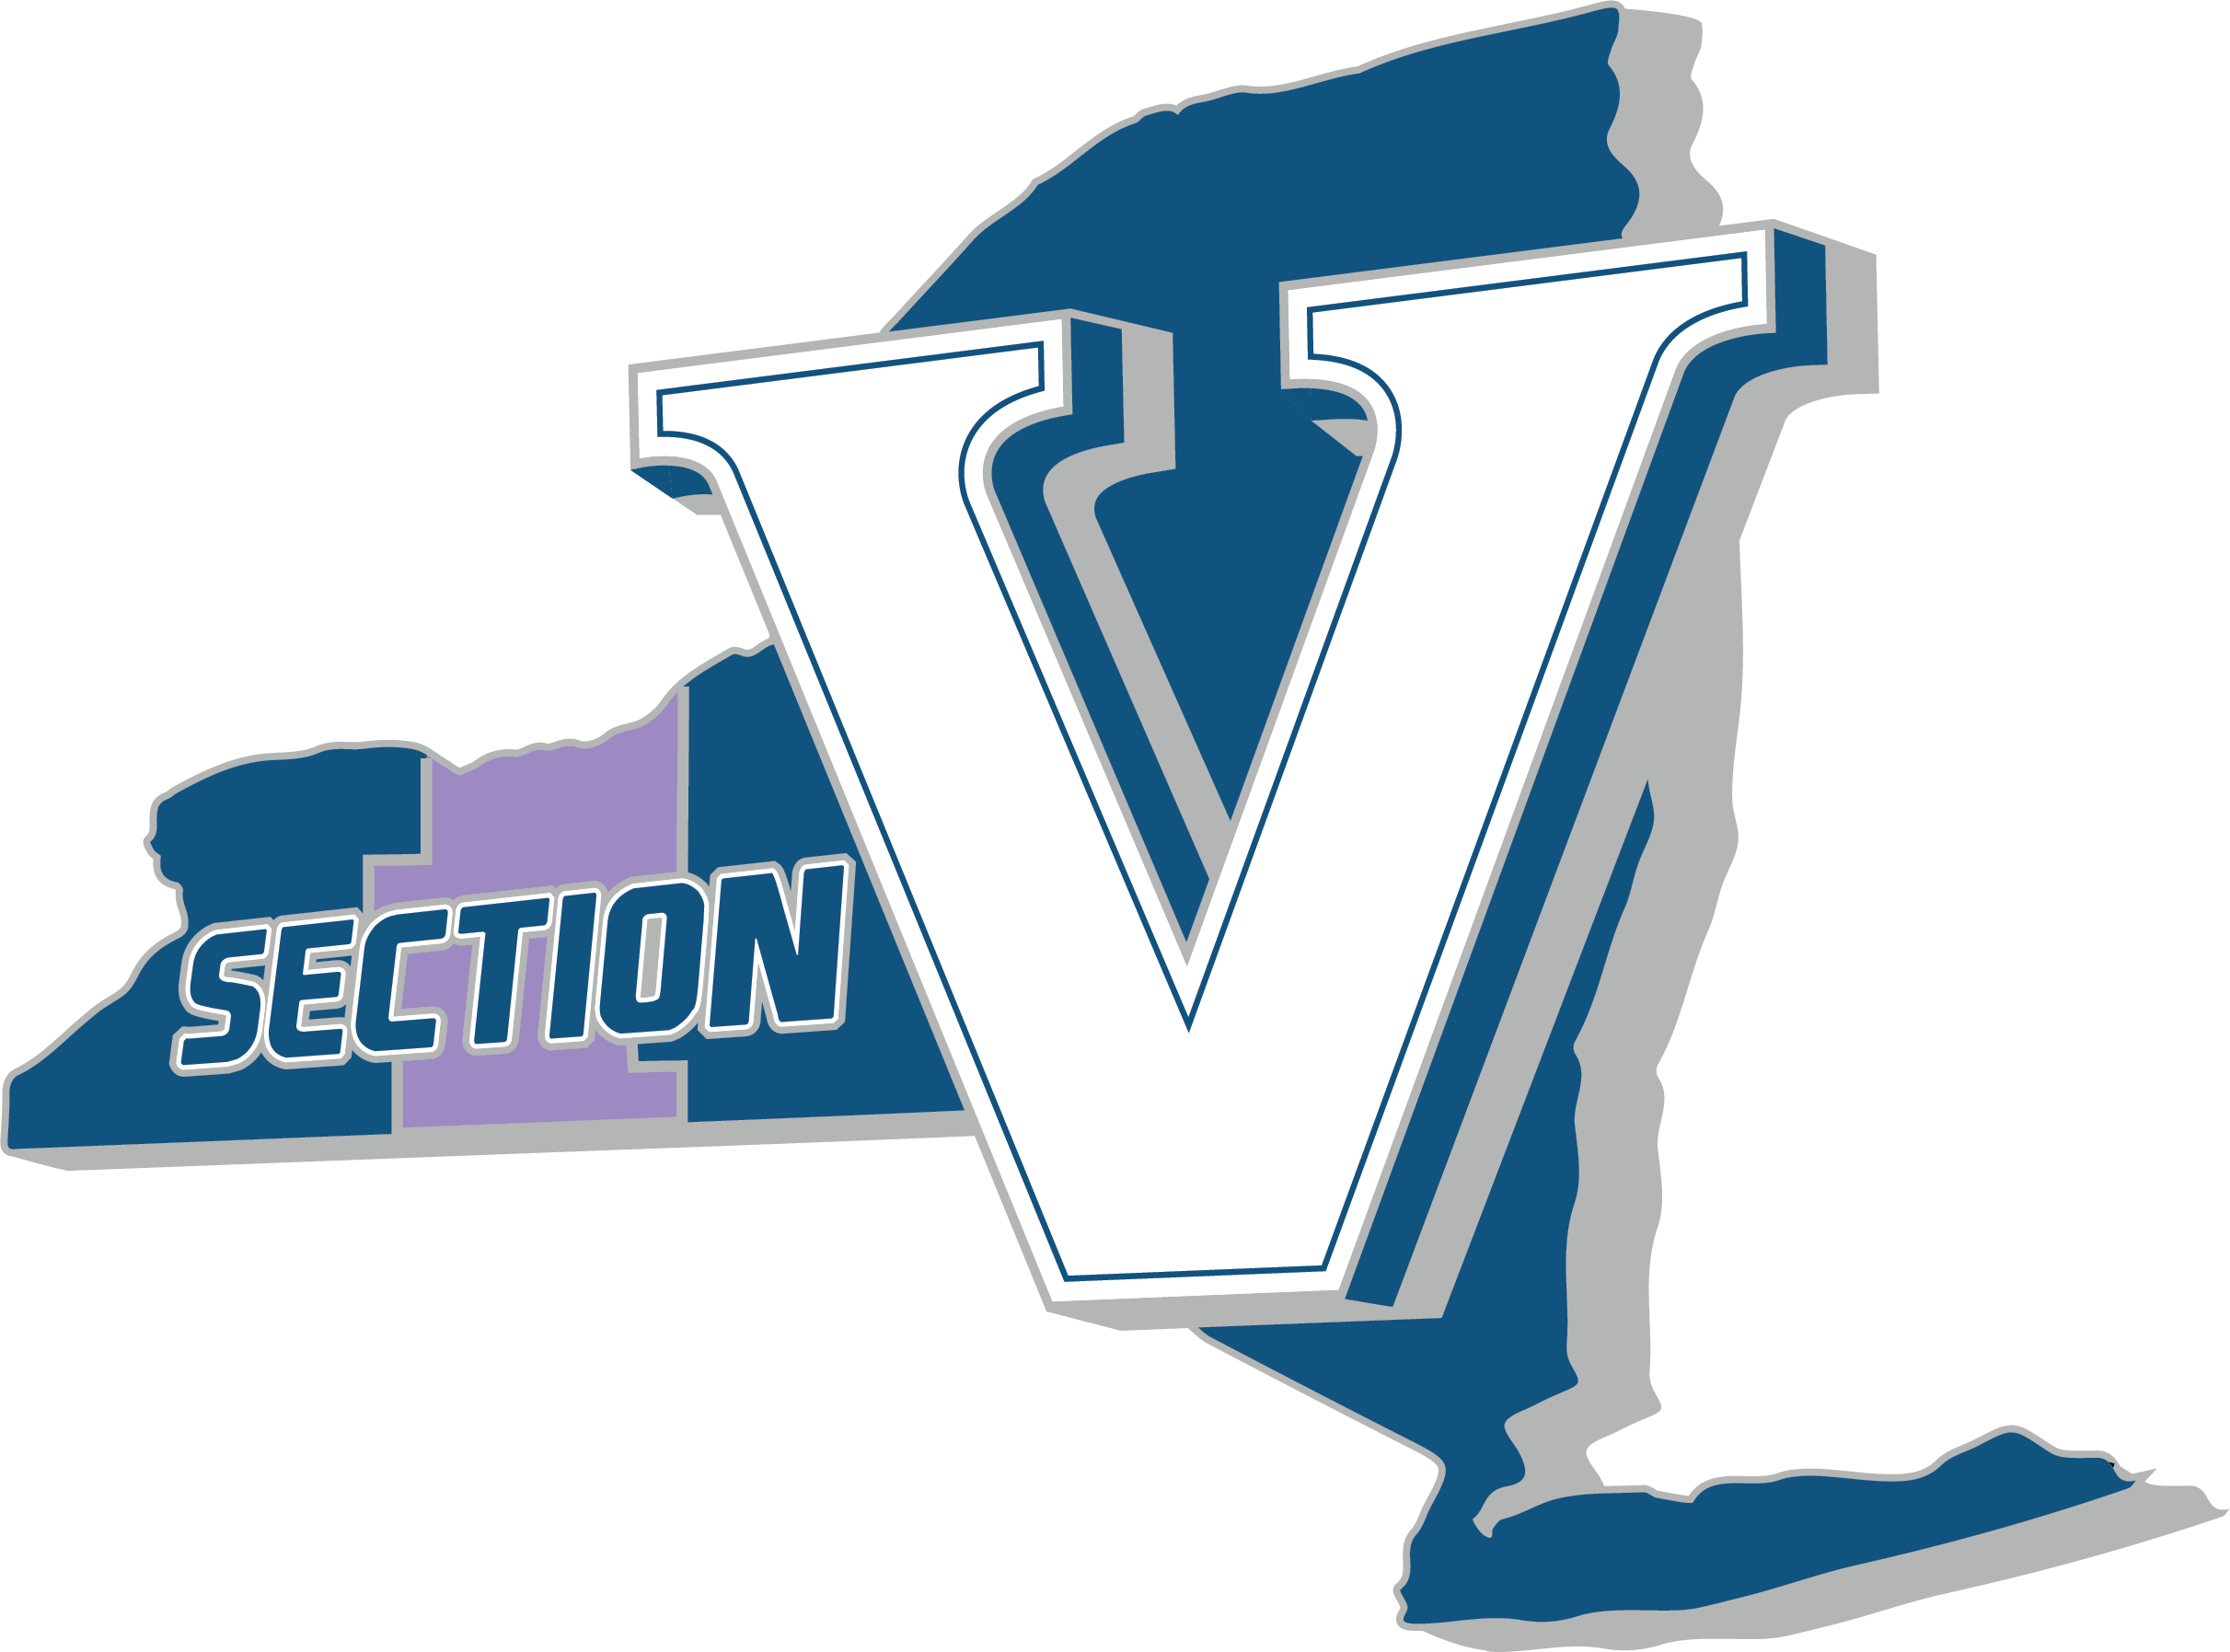 Section V athletics Logo 2018.png